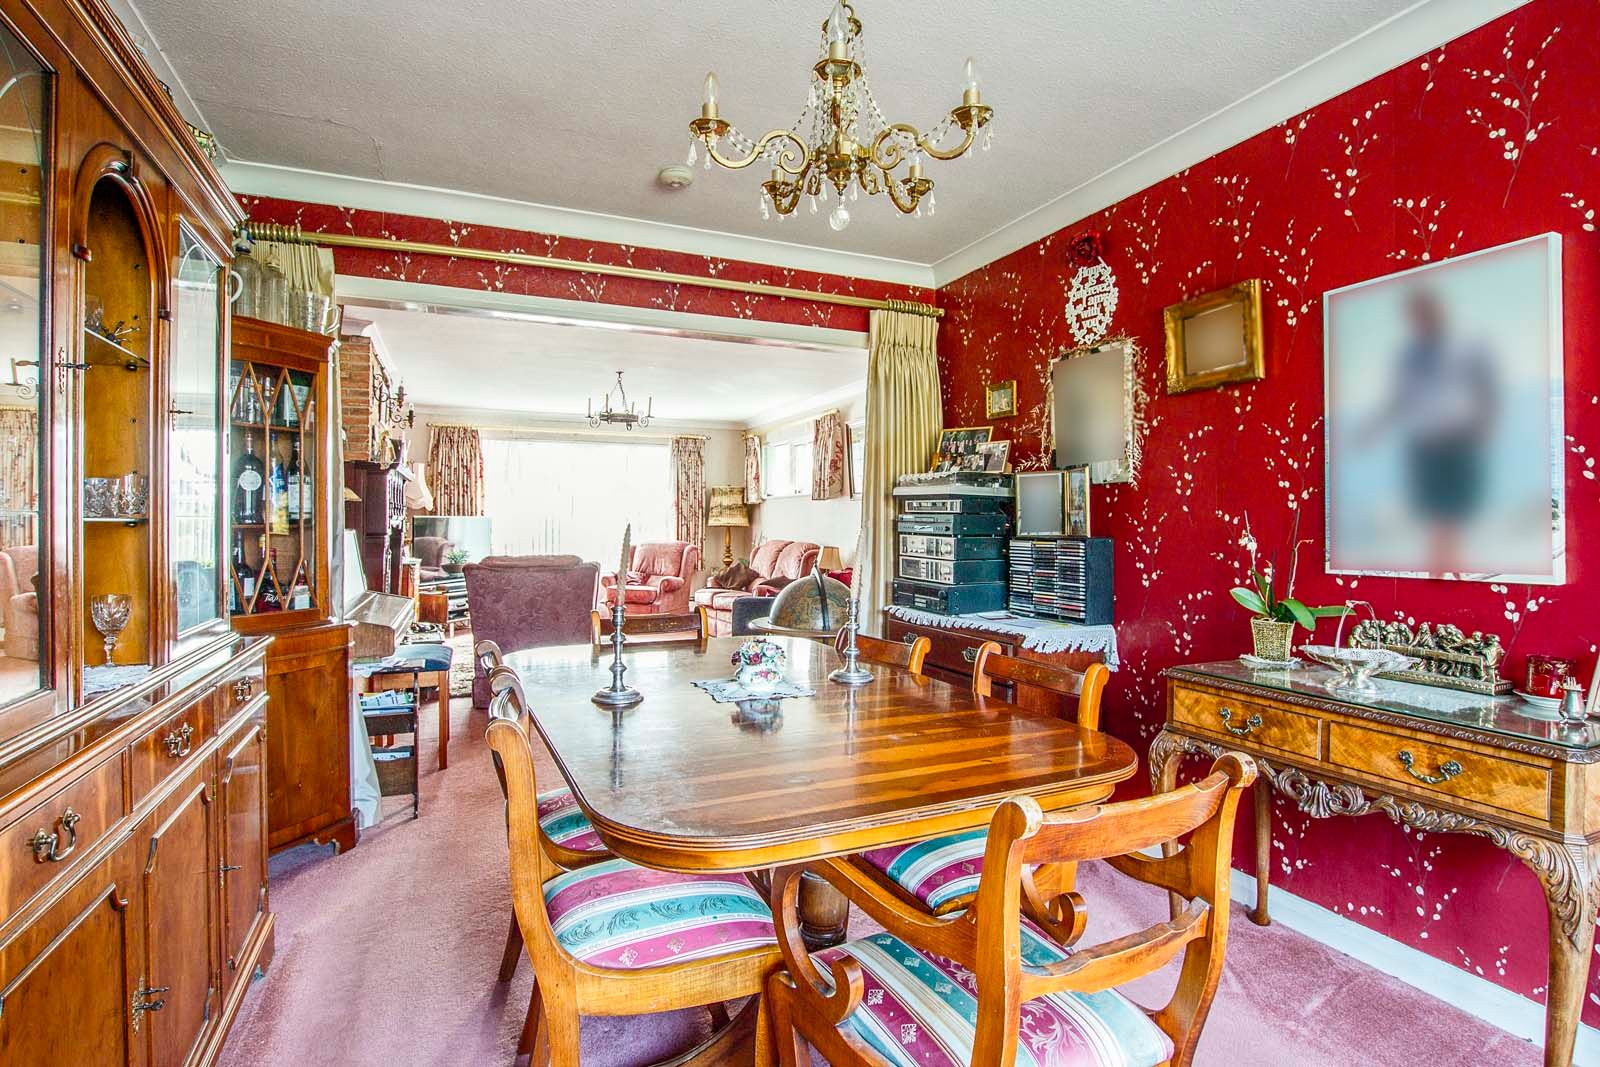 3 bed Bungalow for sale in East Preston - Dining room through to sitting room (Property Image 13)